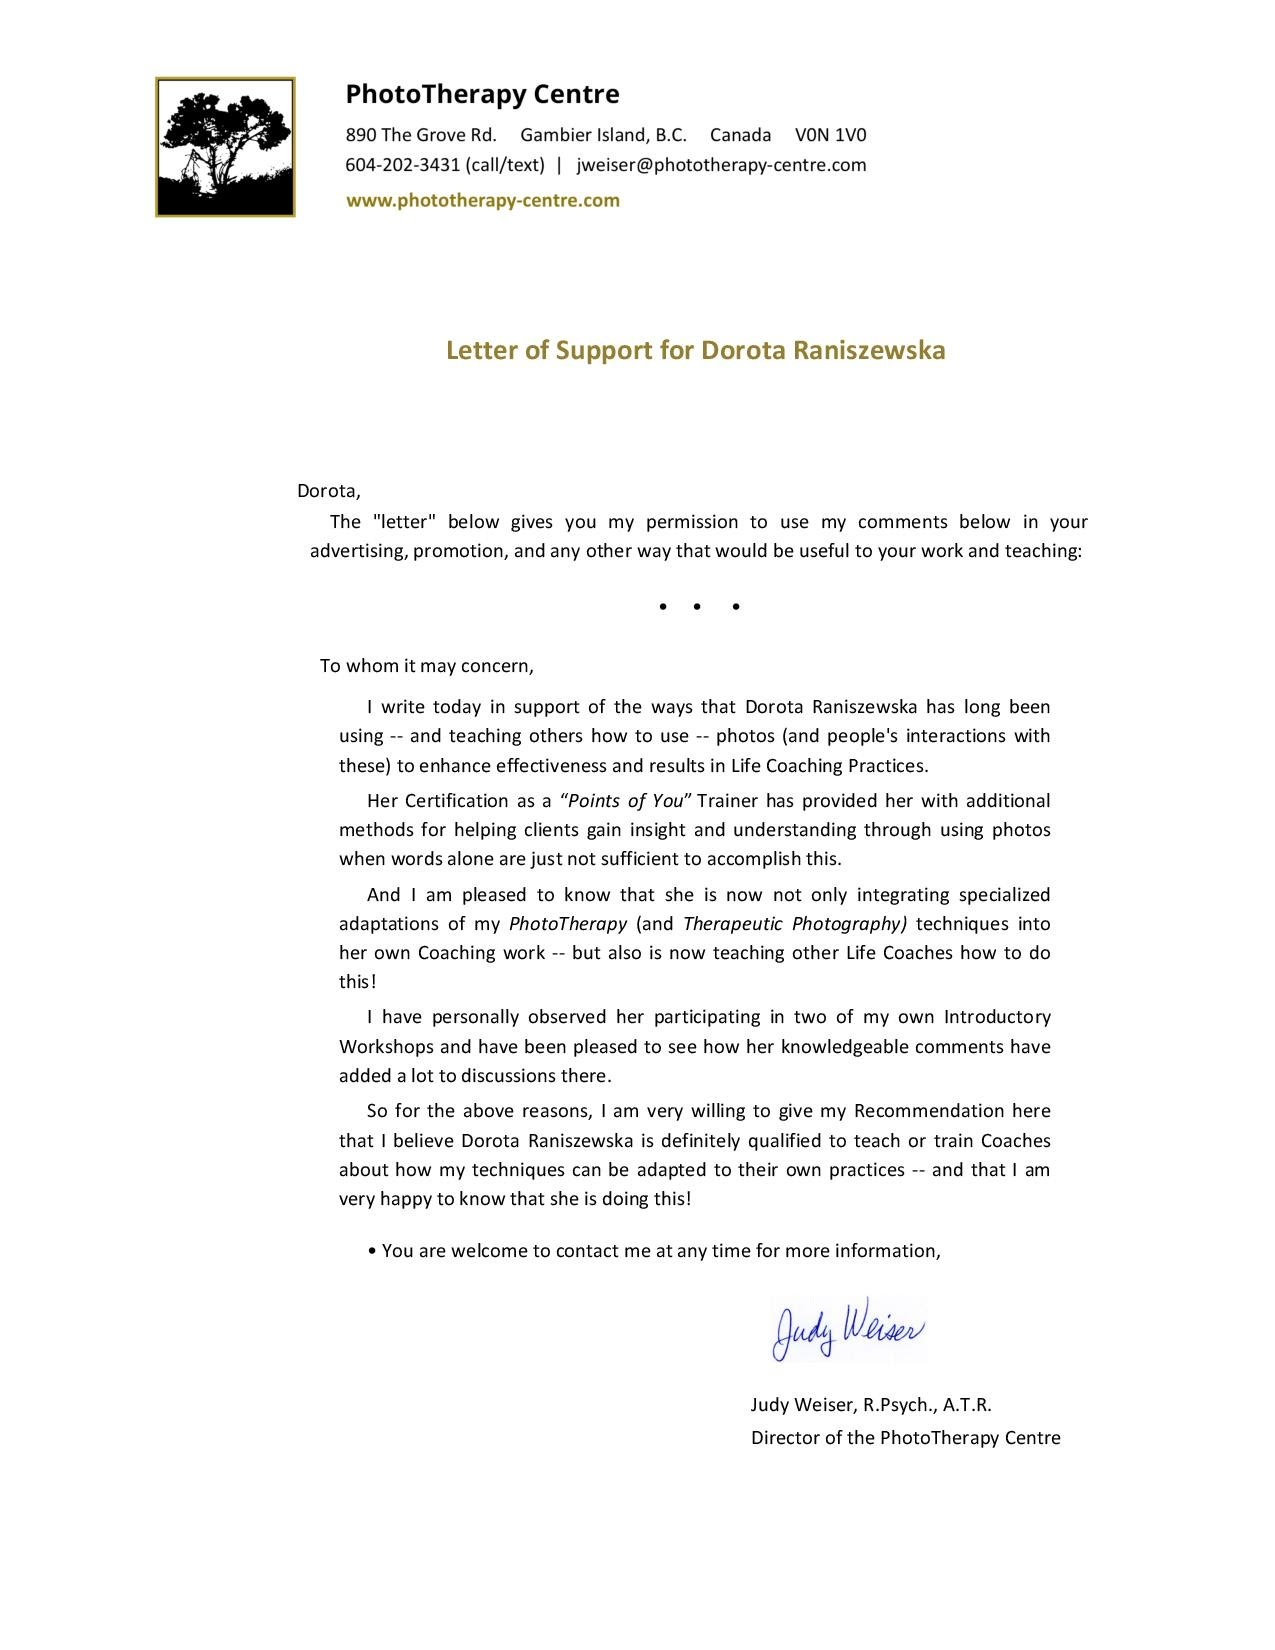 letter-of-support-for-dorota-may-23-2017.jpg